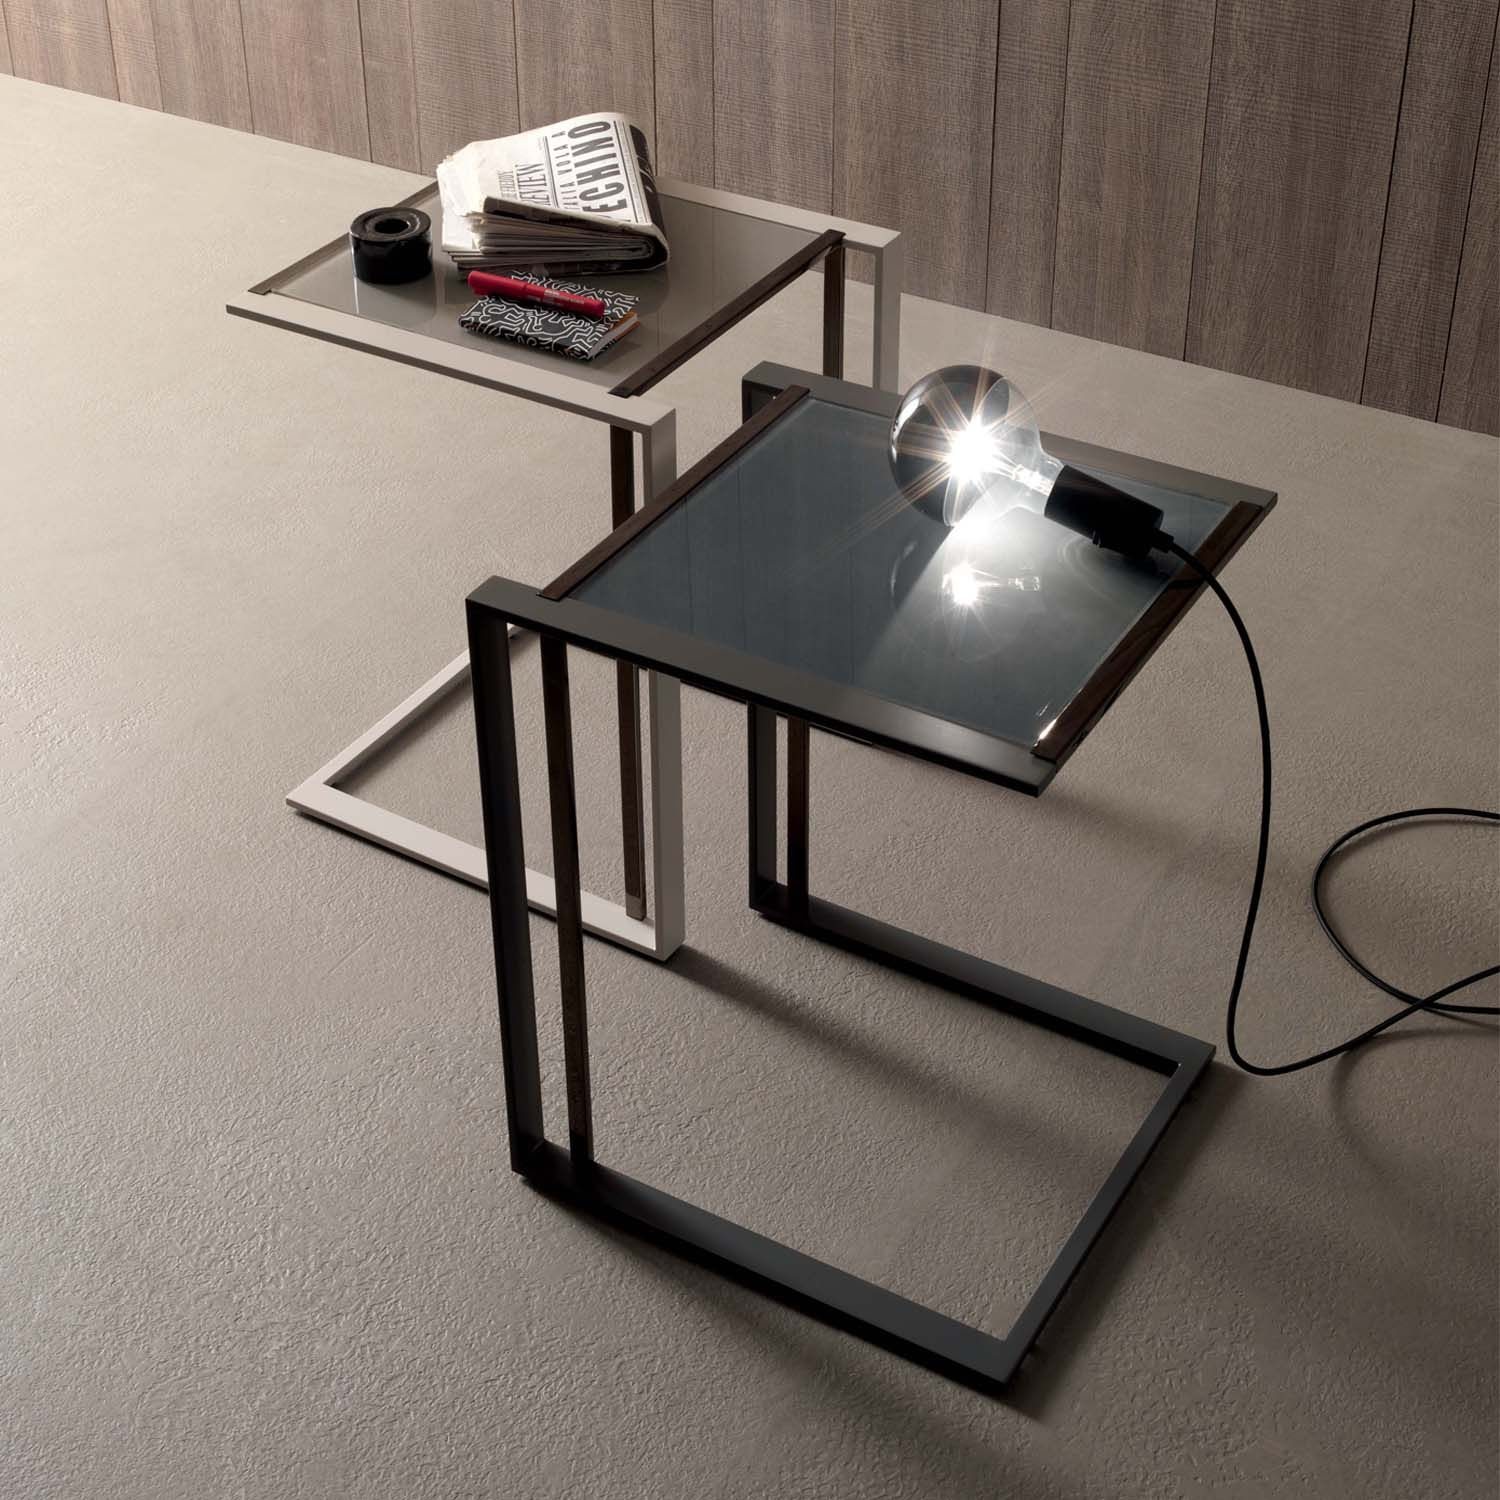 Sofa Side Table Square By Compar In Beige Or Ash Grey L 45 W 48 H At My Italian Living Ltd Sofa Side Table Modern Glass Coffee Table Contemporary Glass Coffee Tables